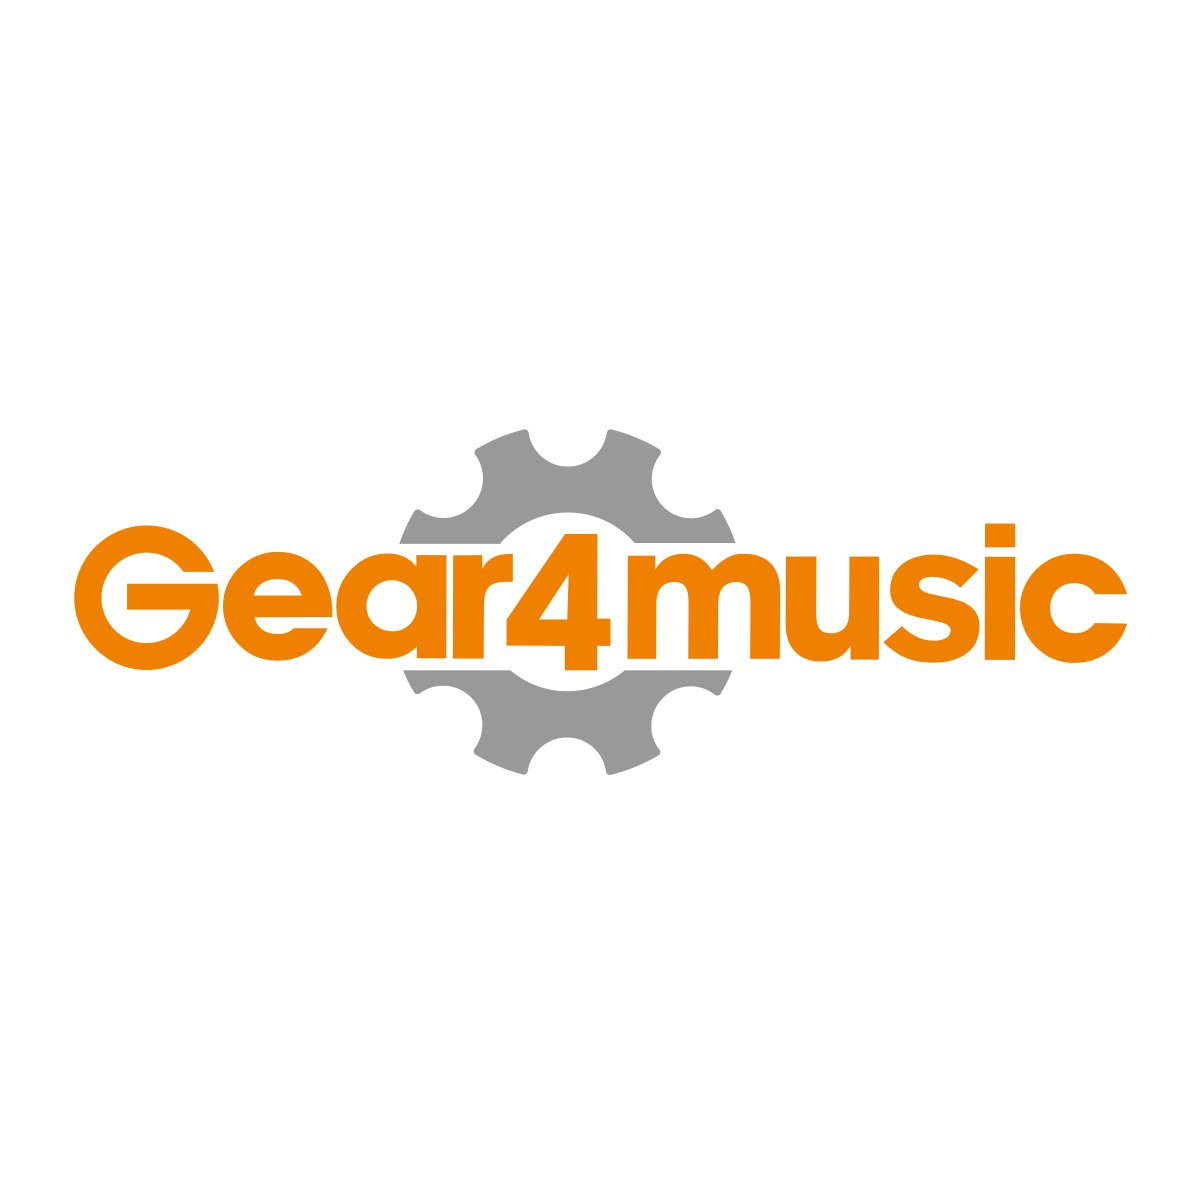 Coppergate intermedio cornetta, argento, di Gear4music